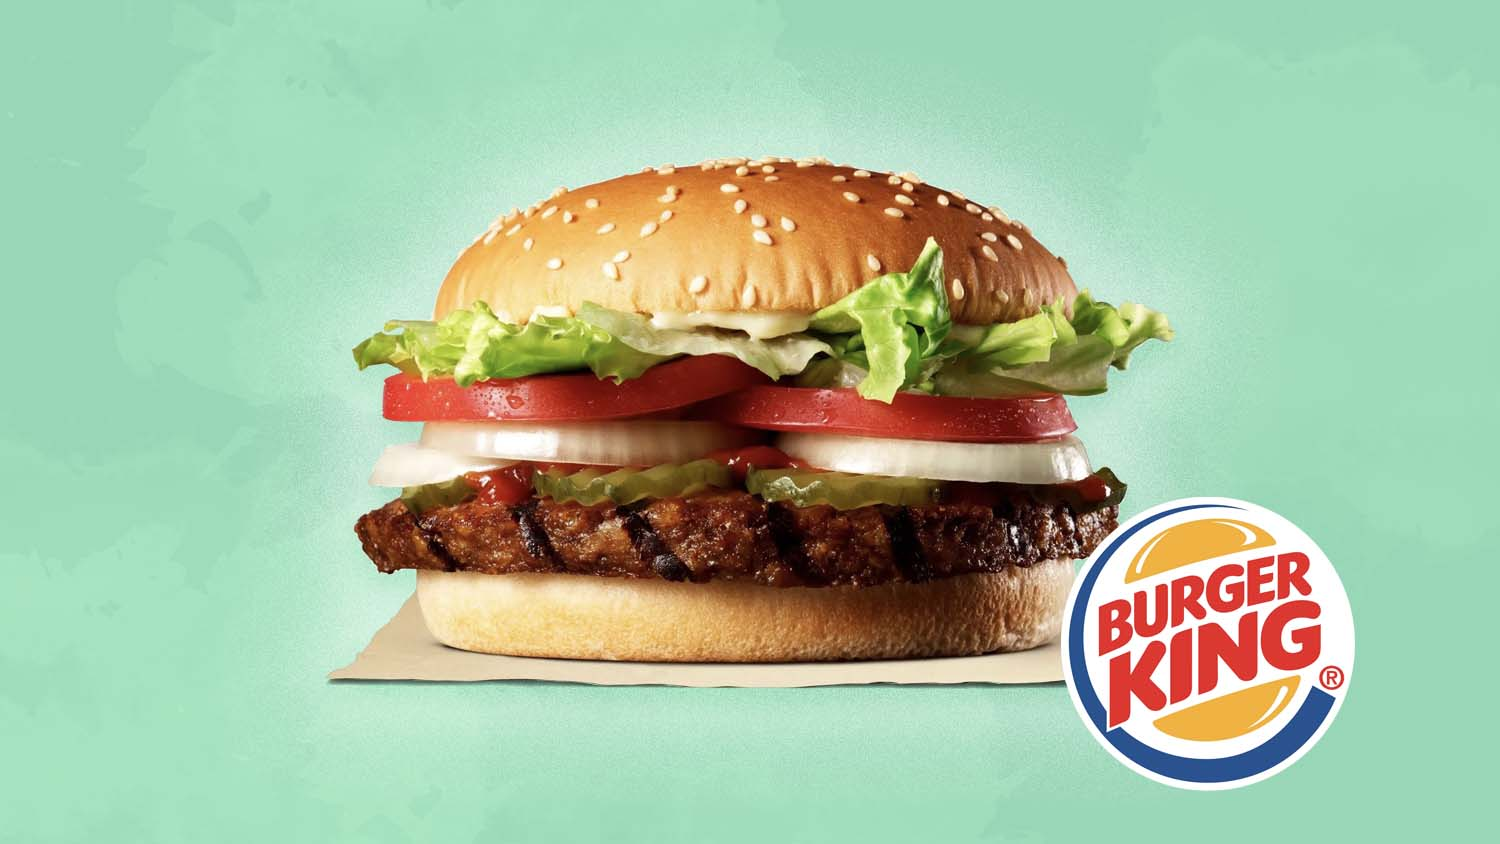 Vegan in Japan: Burger King Now Has a Plant-Based Whopper